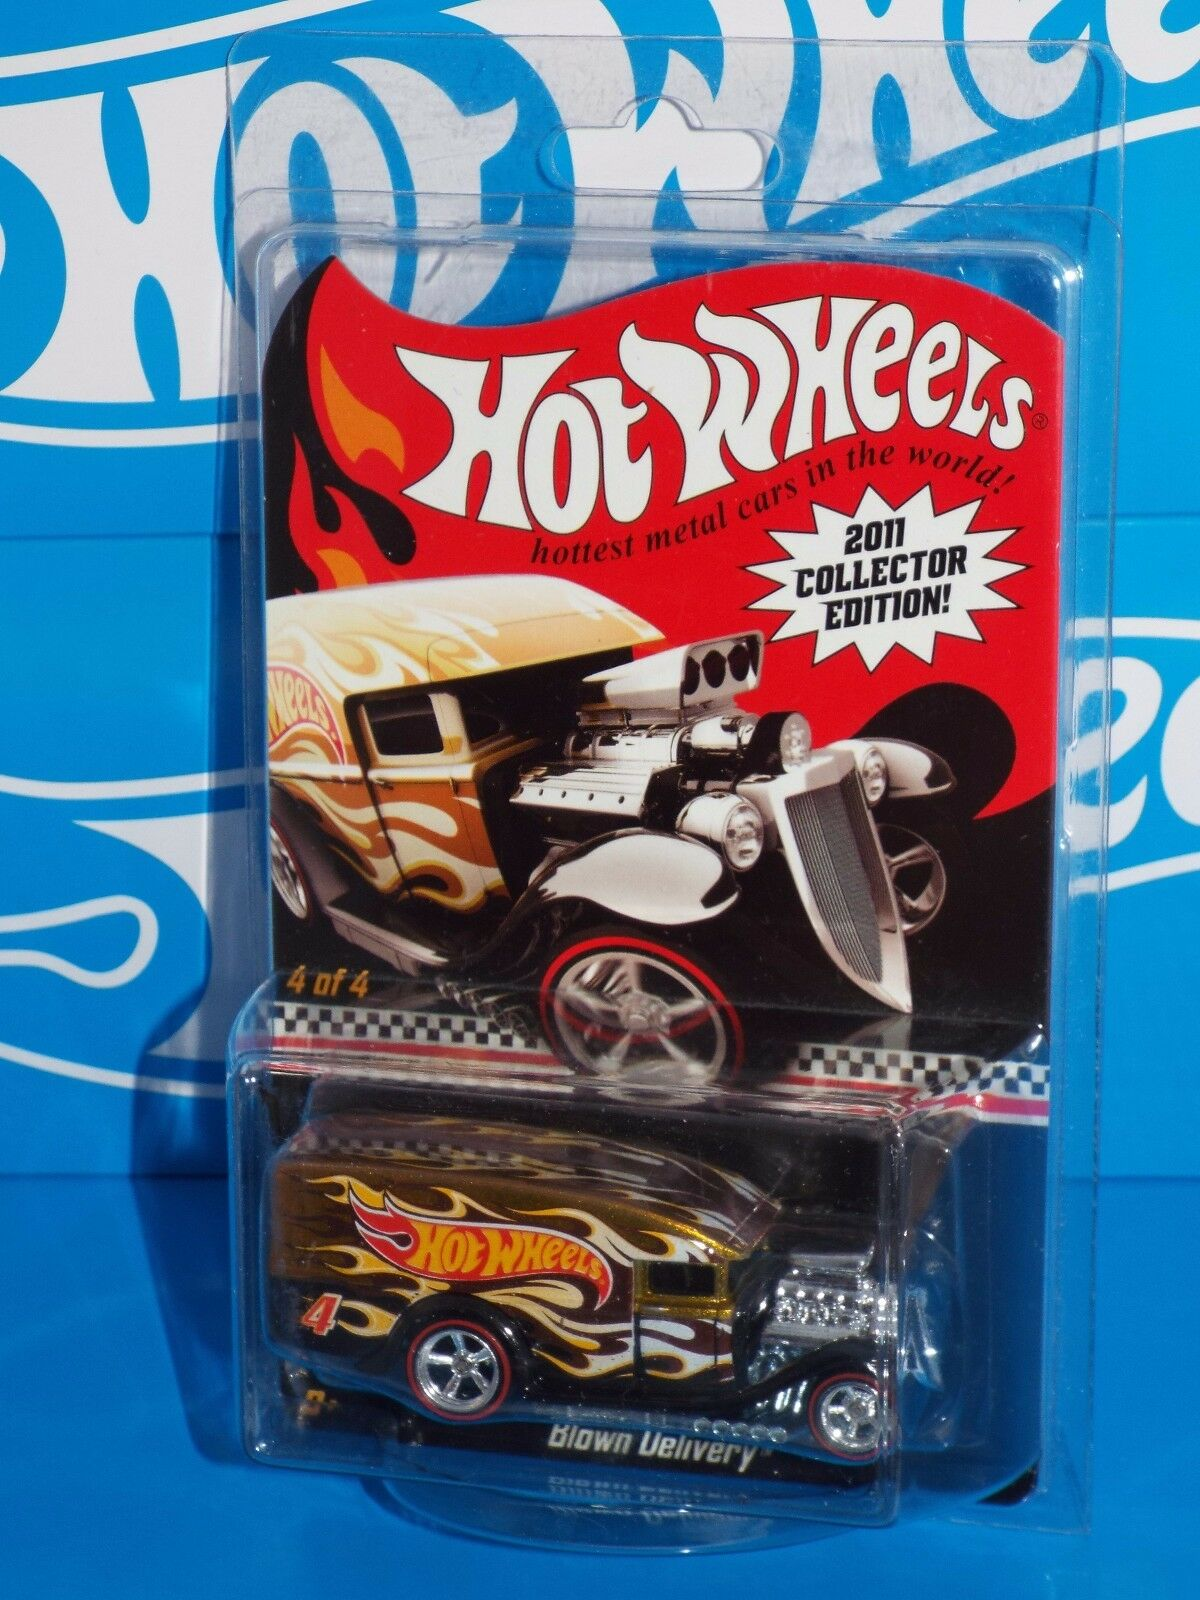 Hot Wheels 2011 4th Quarter Kmart Mail-In Promotion Promotion Promotion Blown Delivery gold w  RRs 772ee2